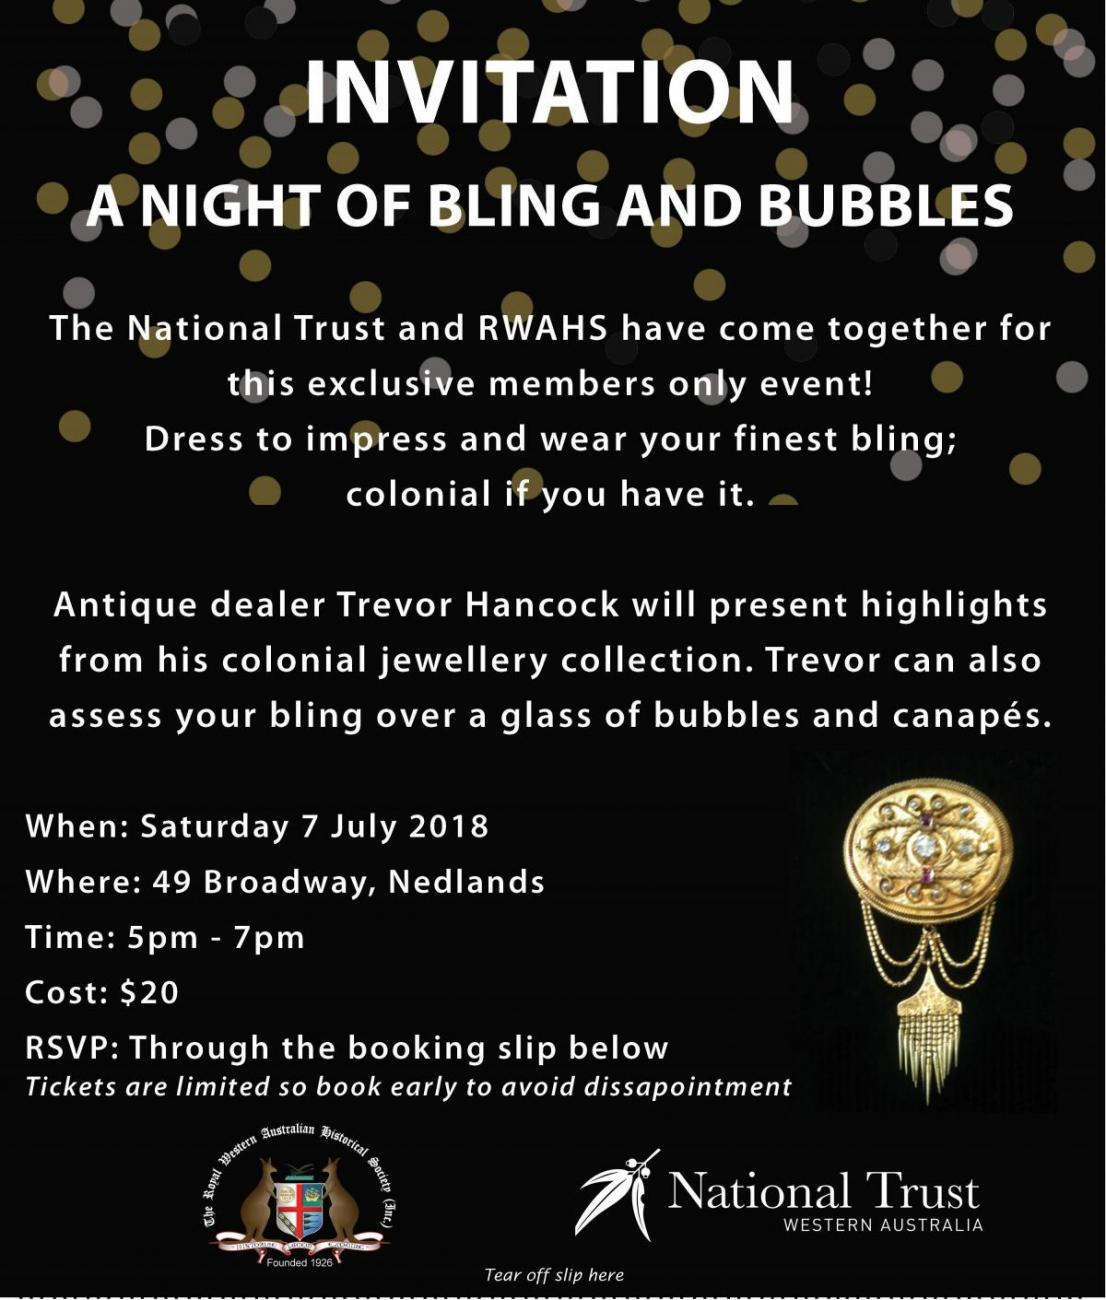 Night of Bling and Bubbles